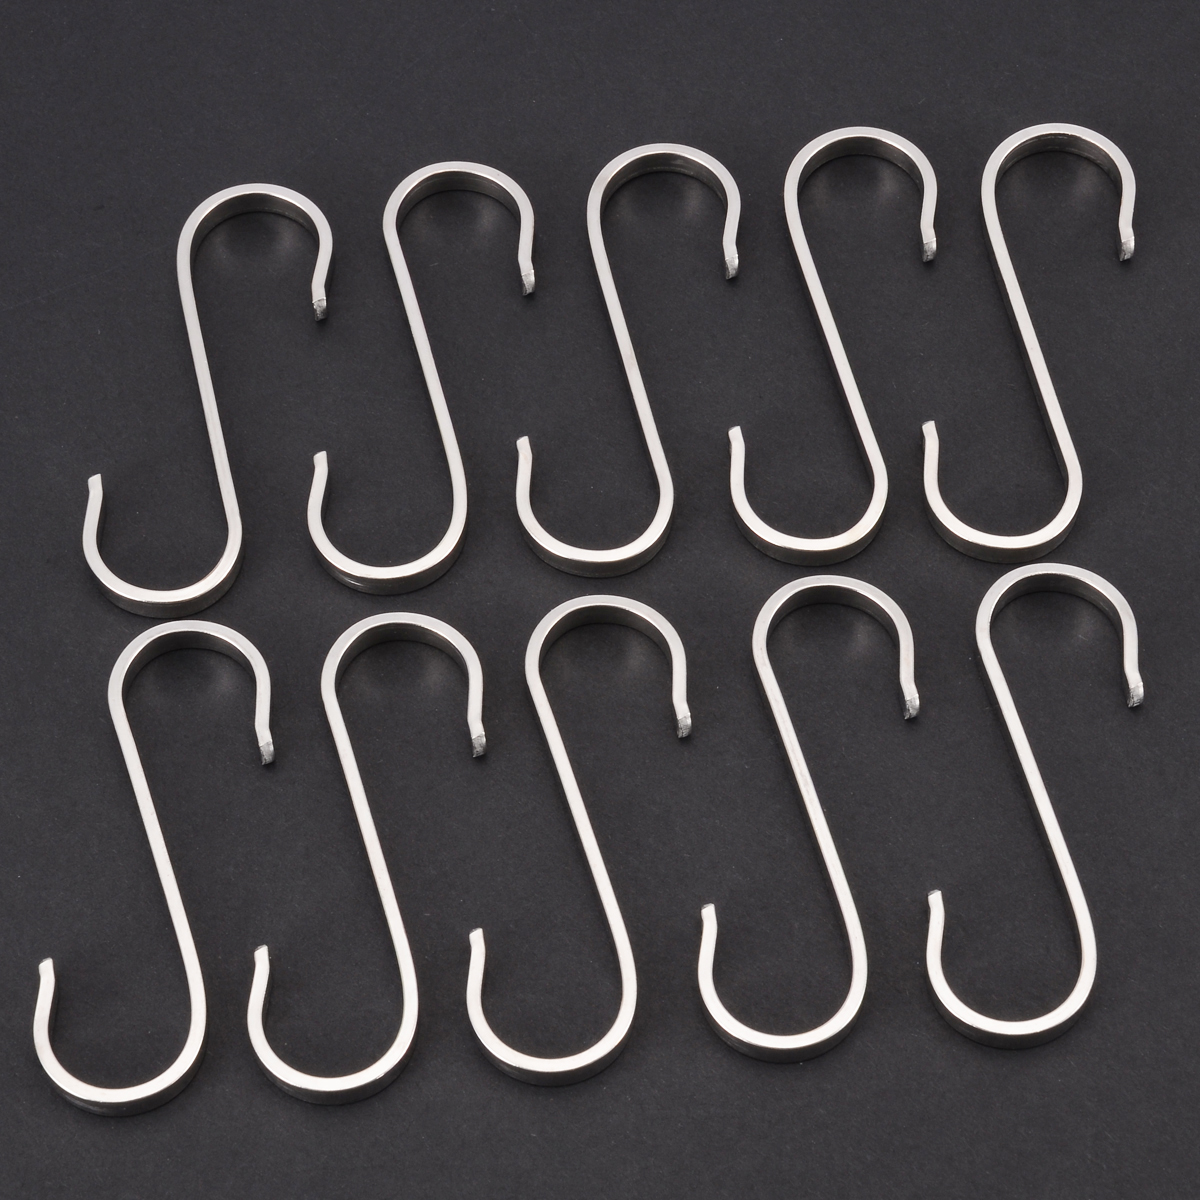 Home Improvement Bathroom Hardware 10pcs Stainless Steel S Shaped Hooks Multifunctional Metal Flat Hanging Hooks Hangers For Kitchen Bathroom Garden Bedroom Moderate Cost